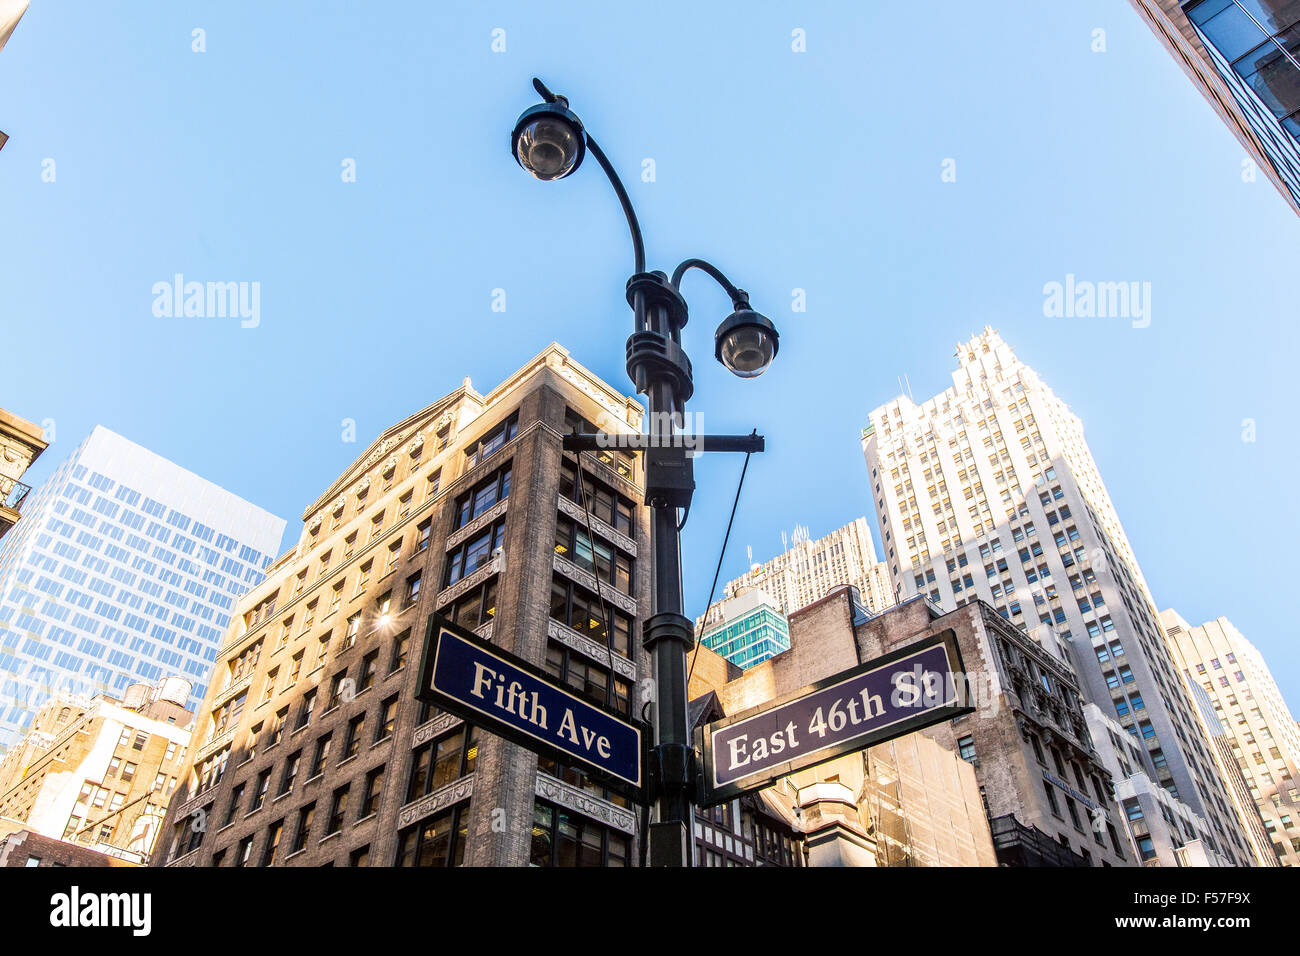 Fifth Avenue and 46th Street Sign, Manhattan, New York City, United States of America. - Stock Image